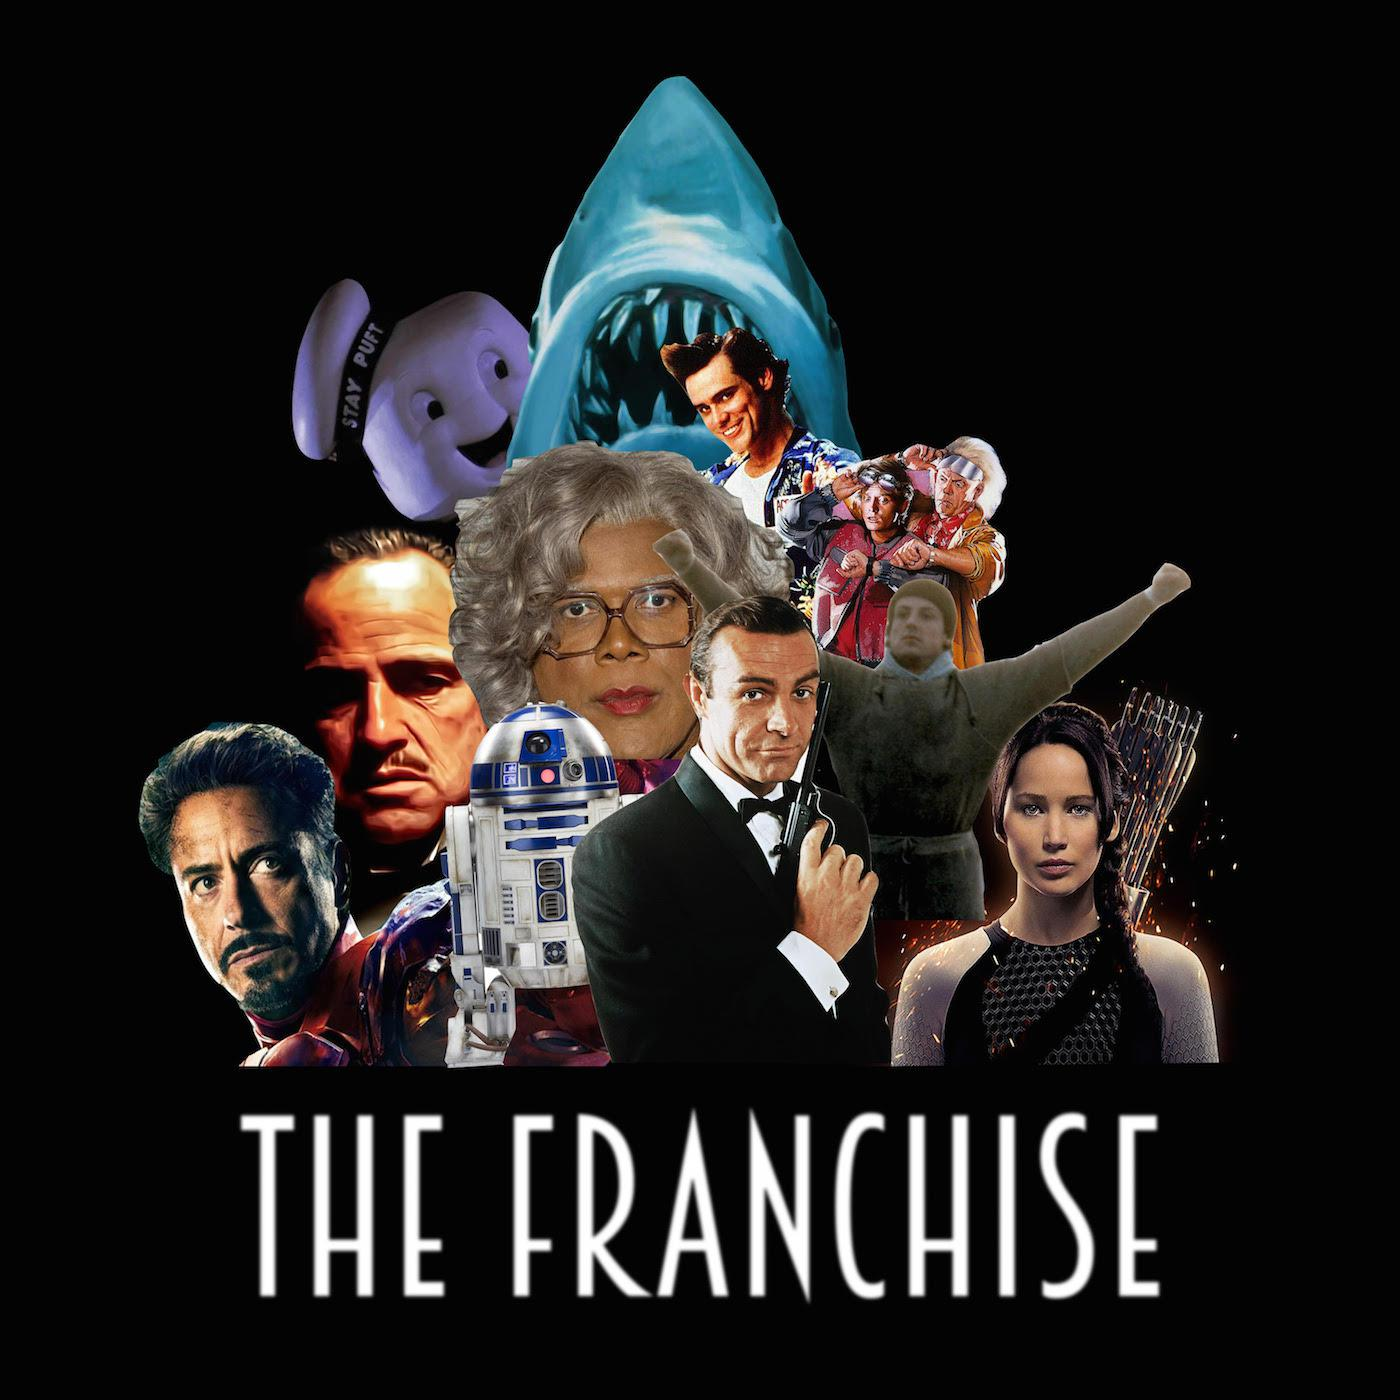 American Pie Presents Beta House Full Movie the franchise (podcast) - the franchise | listen notes